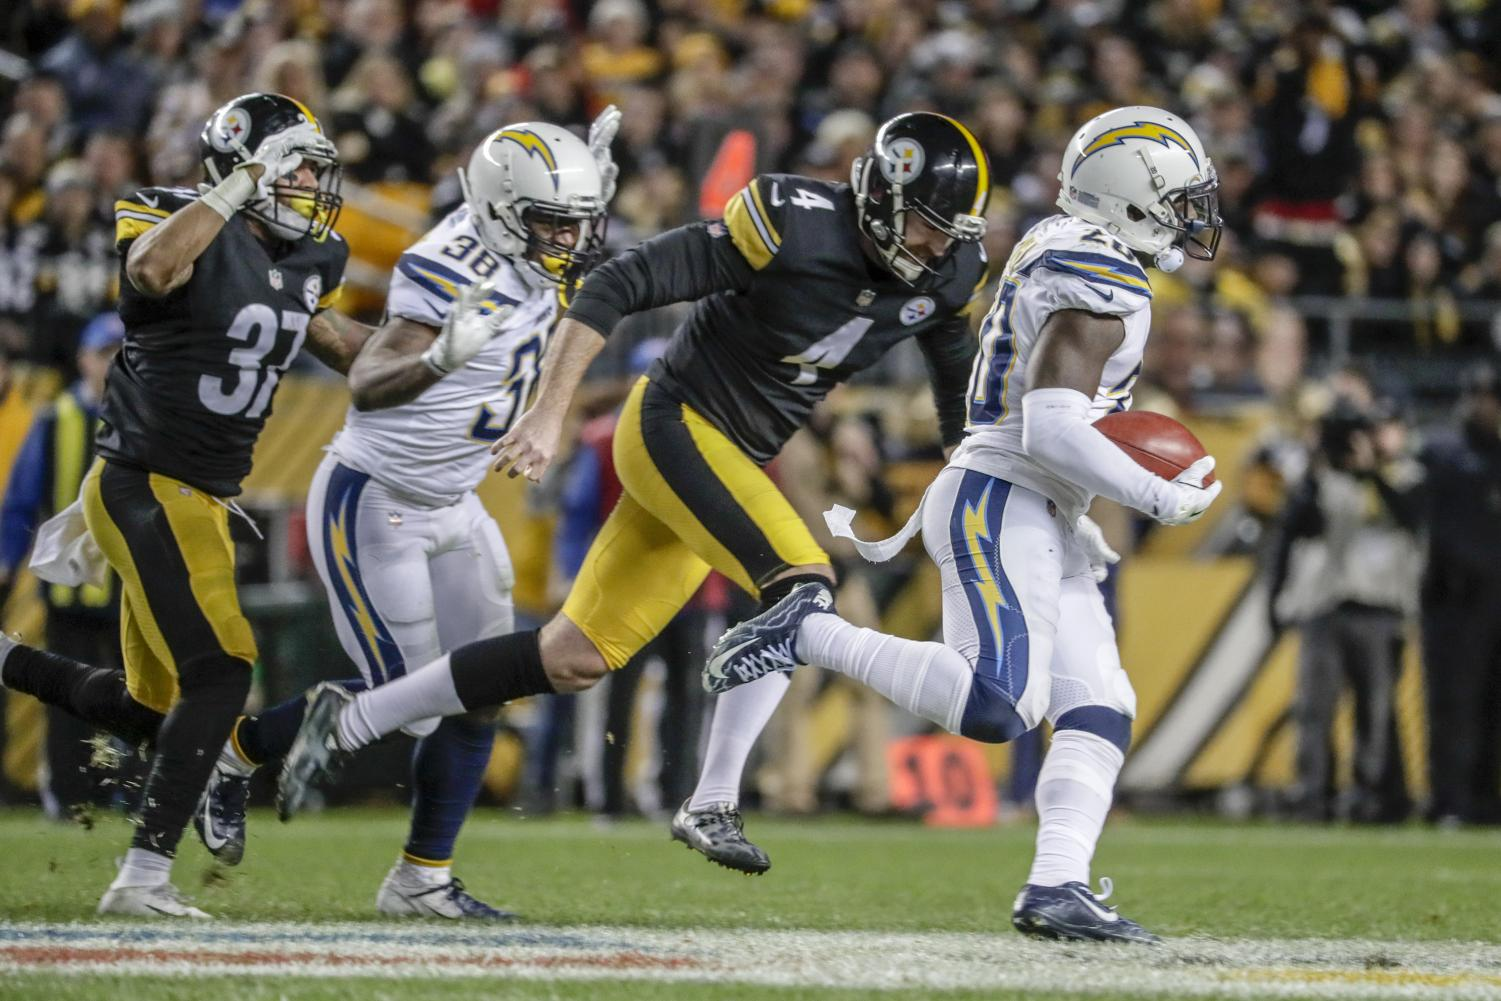 Los Angeles Chargers' Desmond King III sprints past Pittsburgh Steelers punter Jordan Berry on his way to a fourth quarter punt return for a touchdown on Sunday, Dec. 2, 2018 at Heinz Field in Pittsburgh, Pa. (Robert Gauthier/Los Angeles Times/TNS)